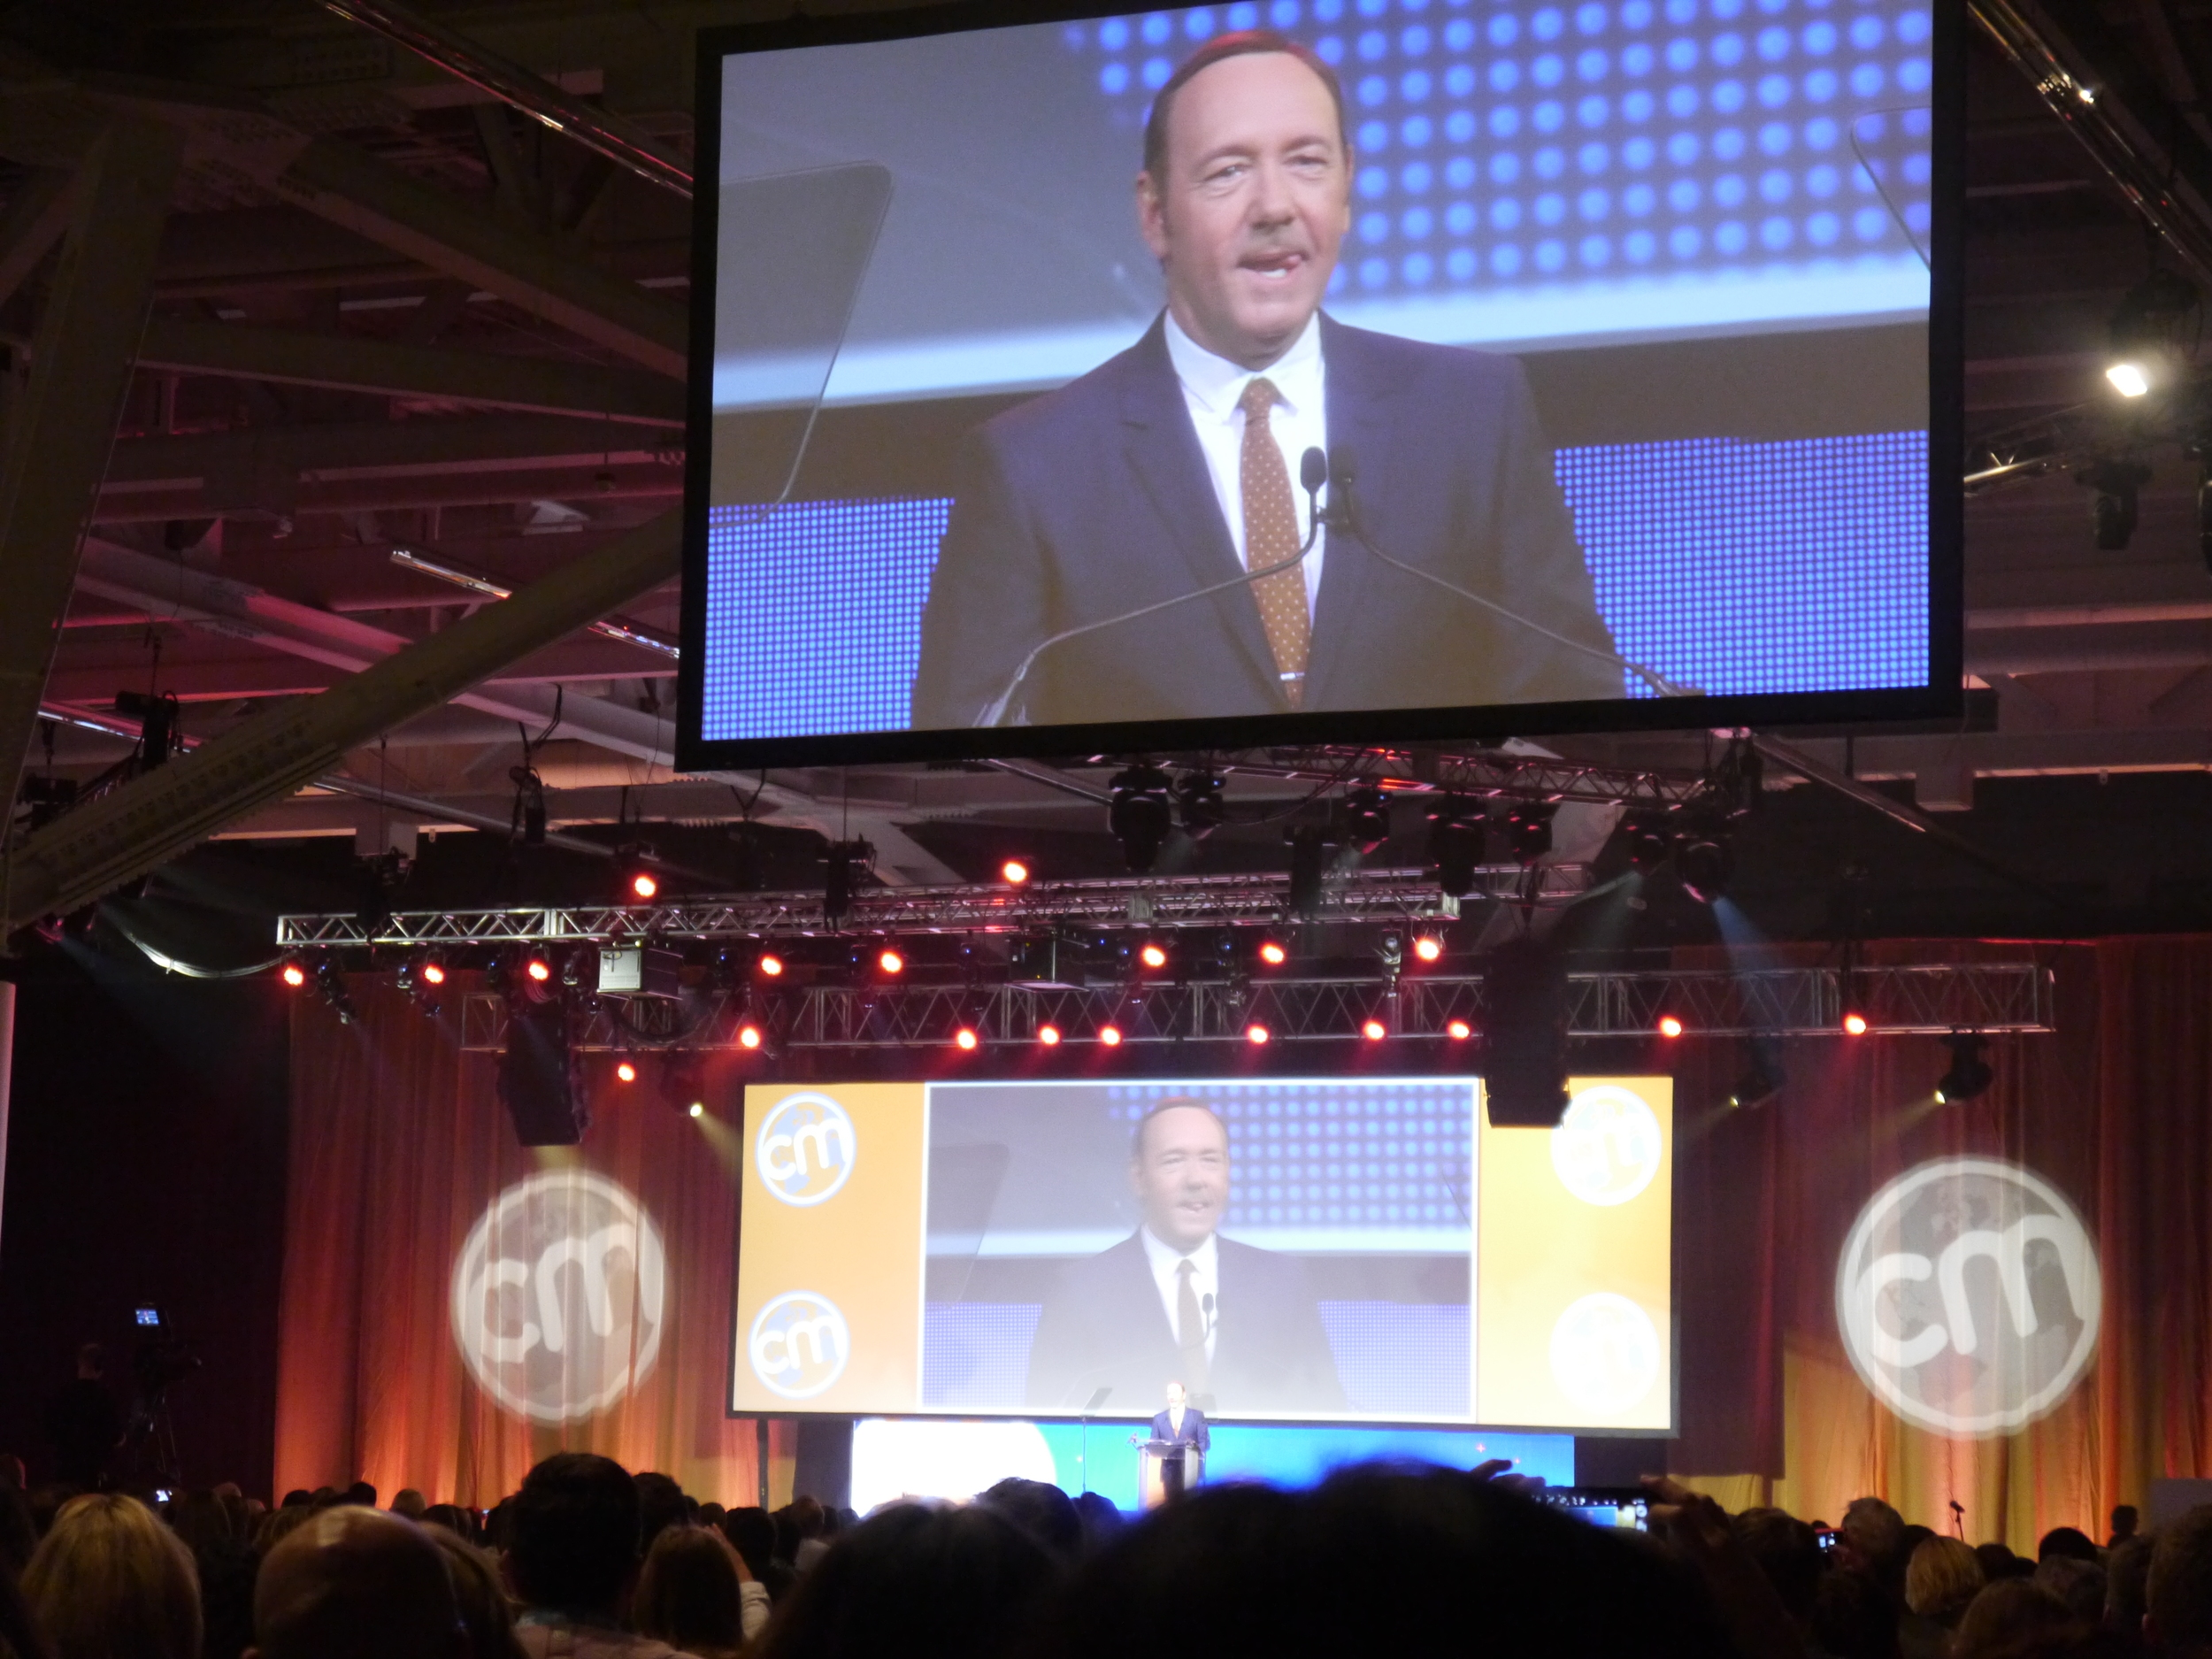 Kevin Spacey delivers a killer keynote at CMWorld2014.